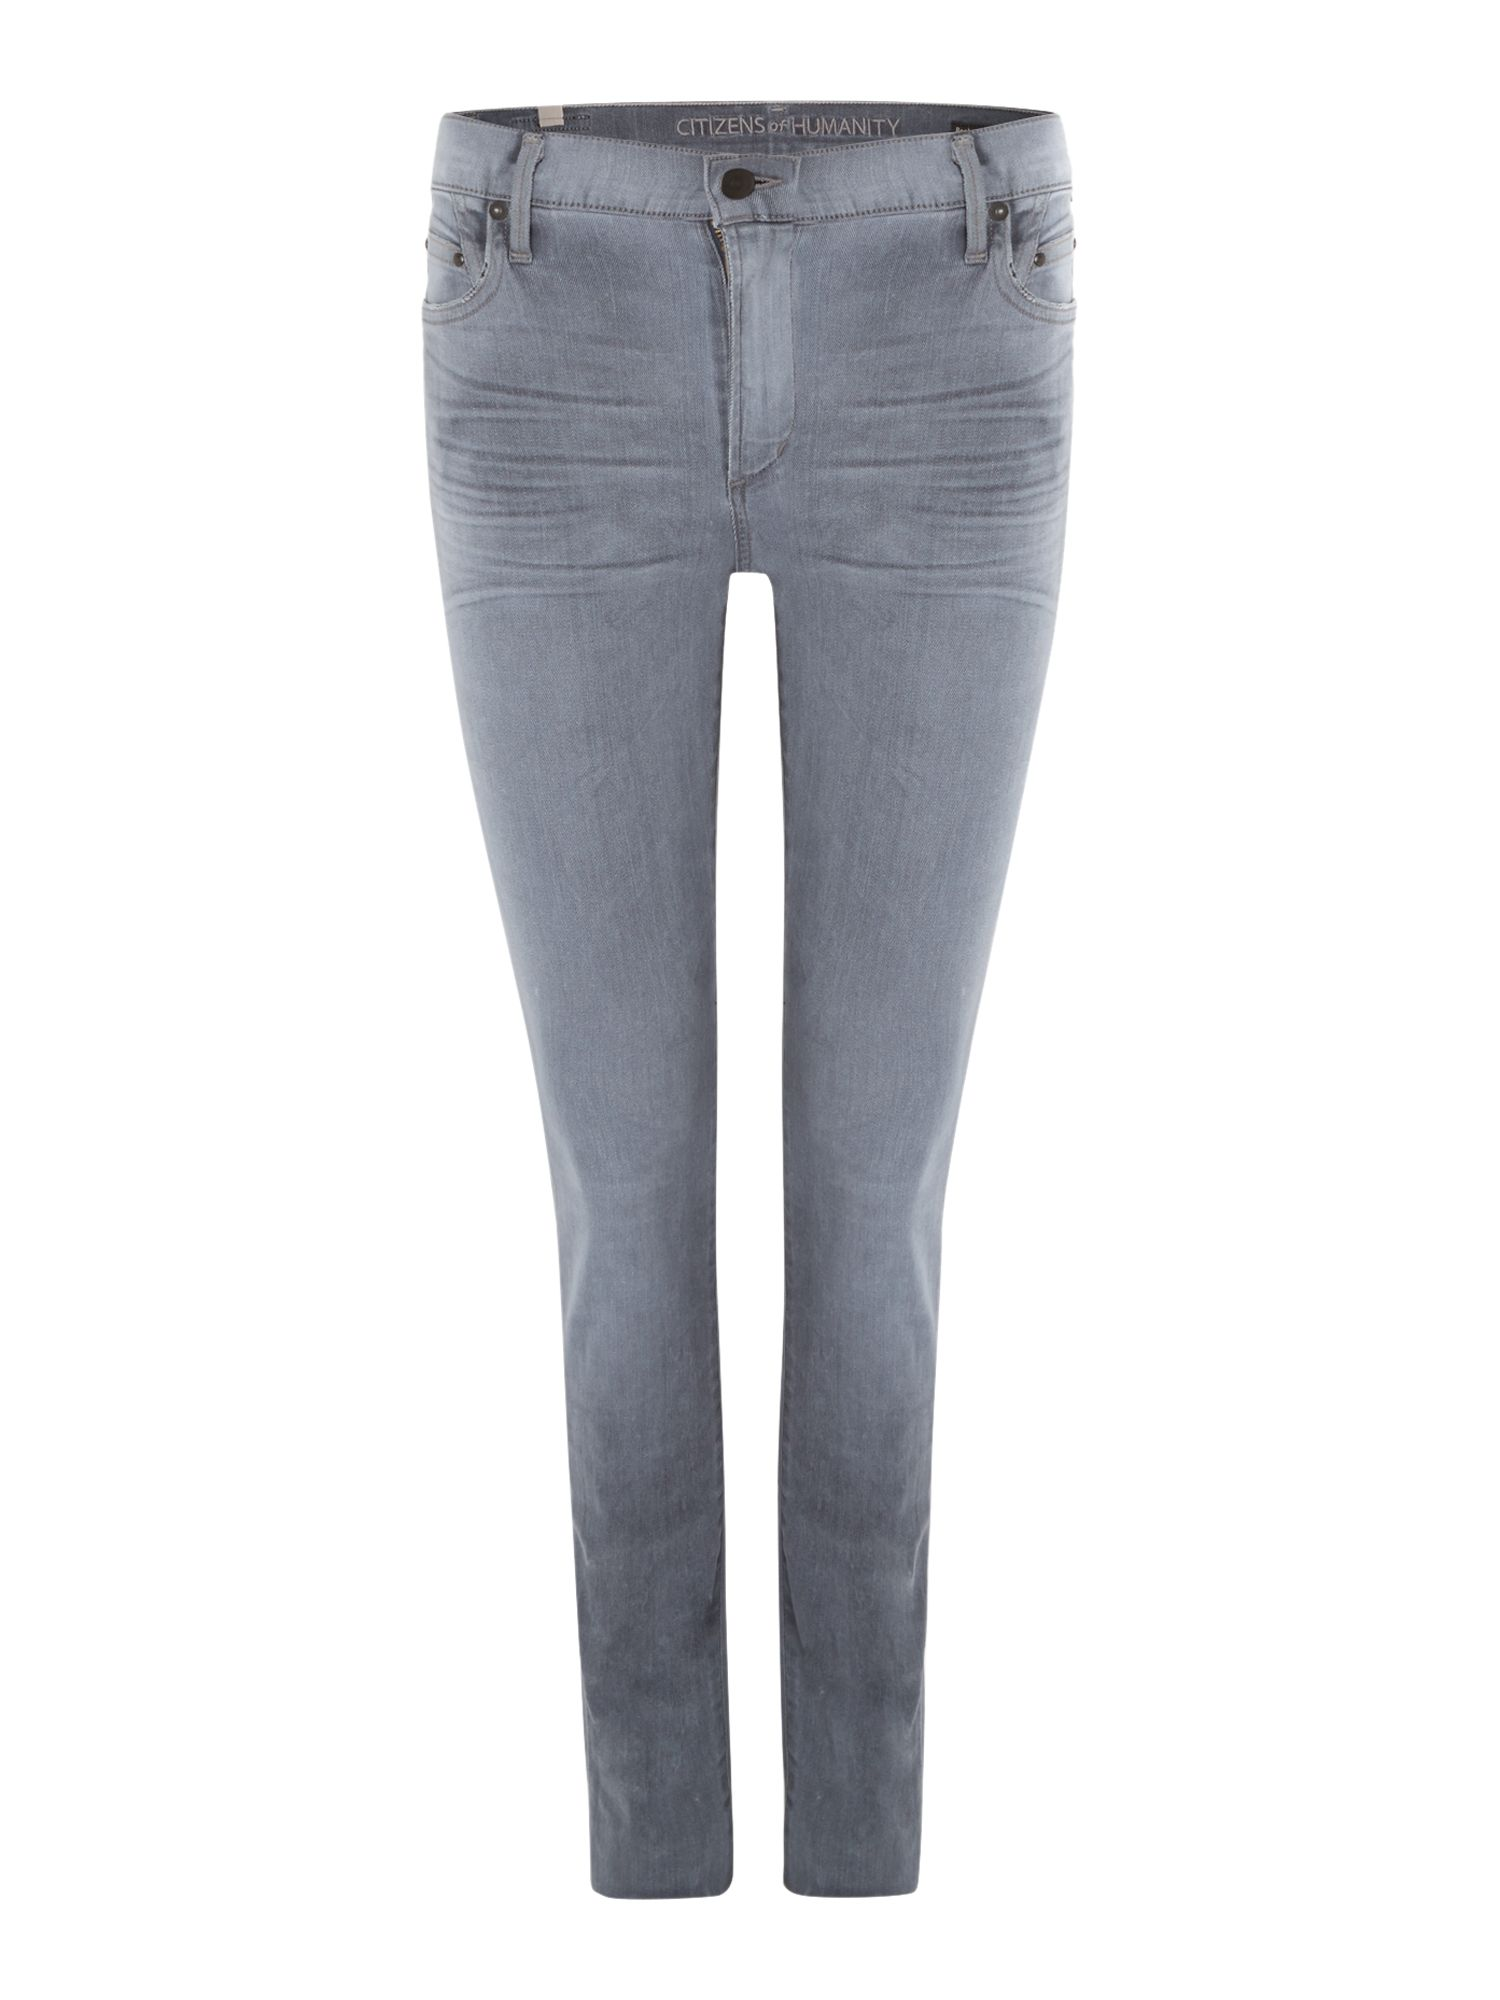 Rocket high rise skinny jeans in chromatic